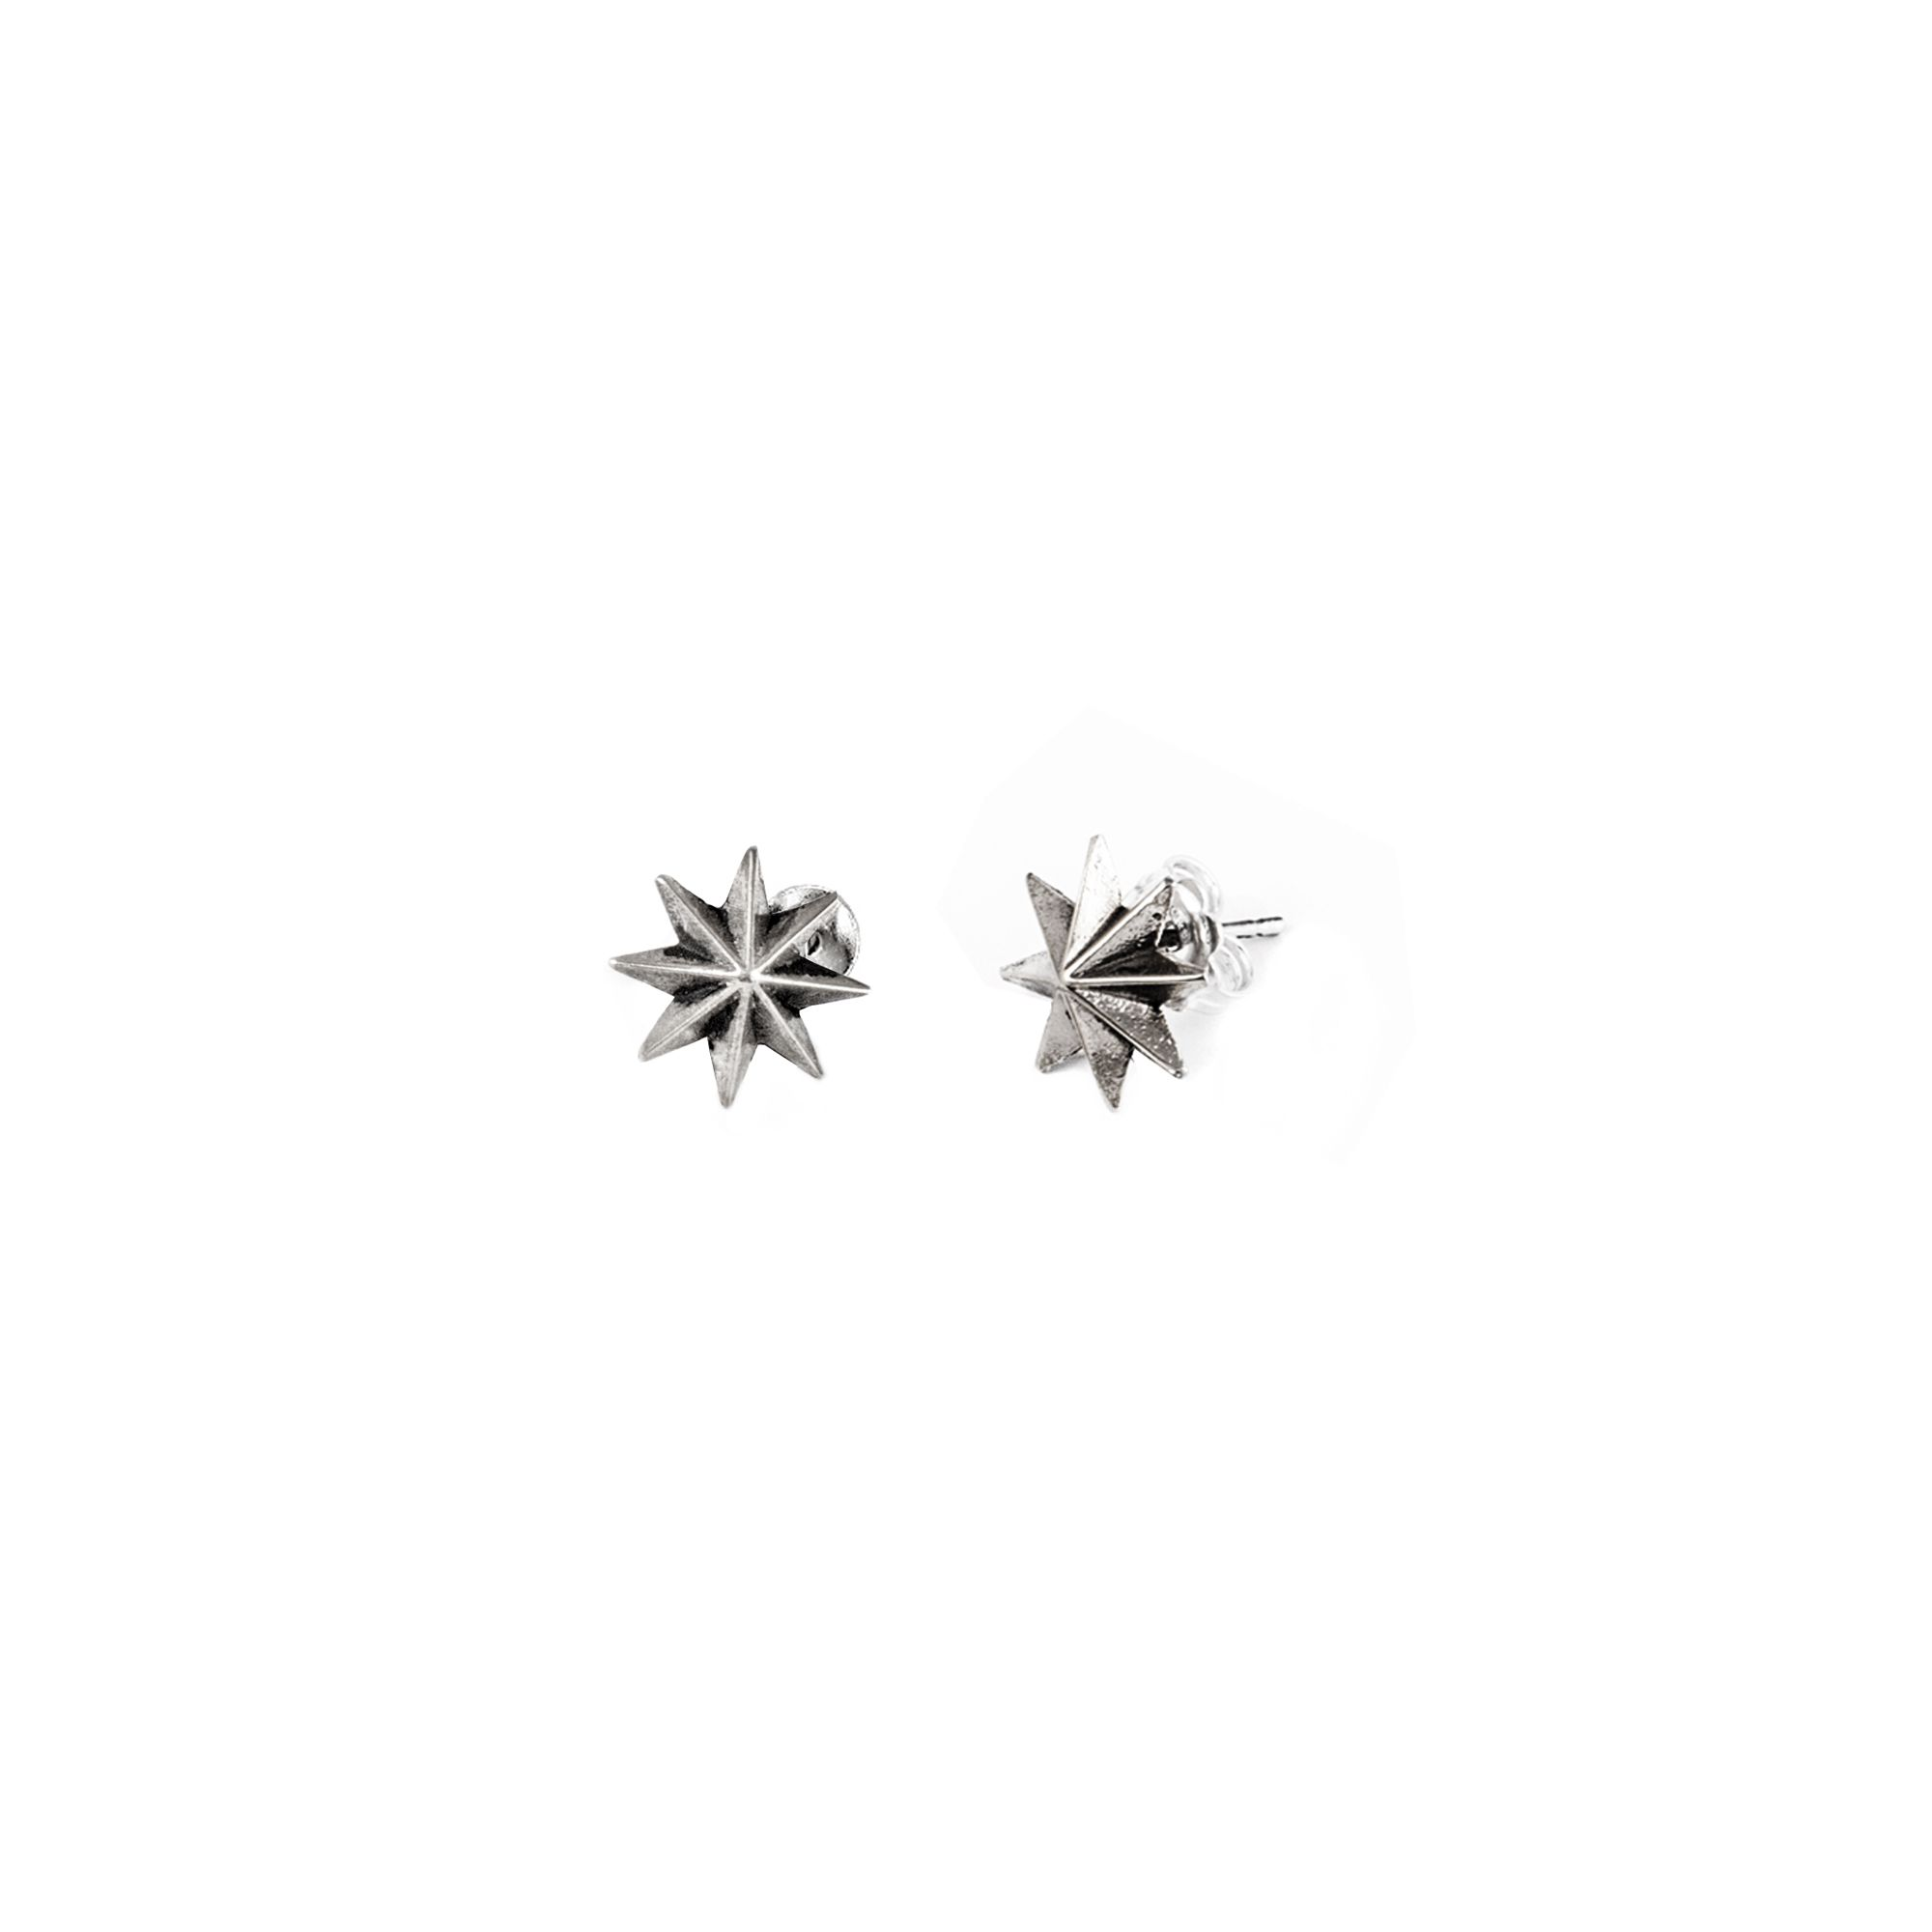 'Star of the winds' earrings Lobe earrings in silver